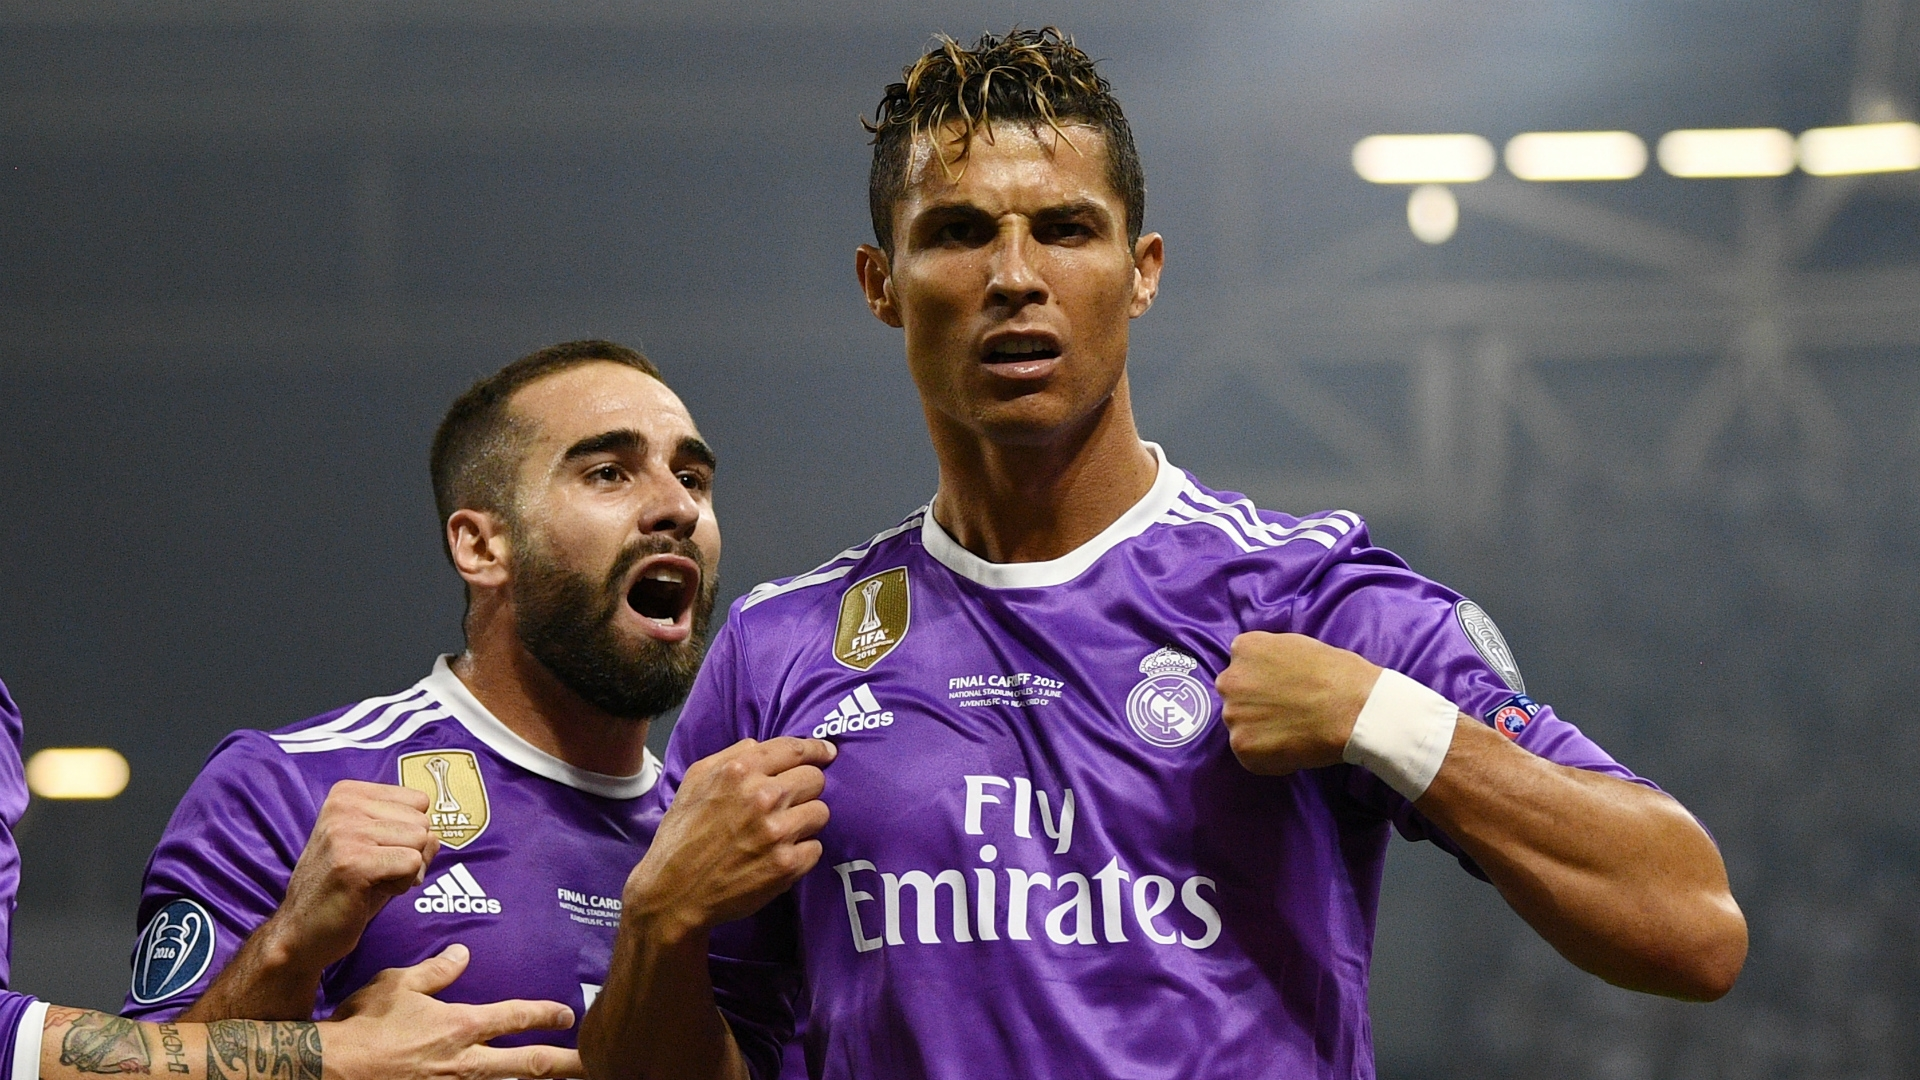 Ronaldo believes he has answered his critics through his good performances